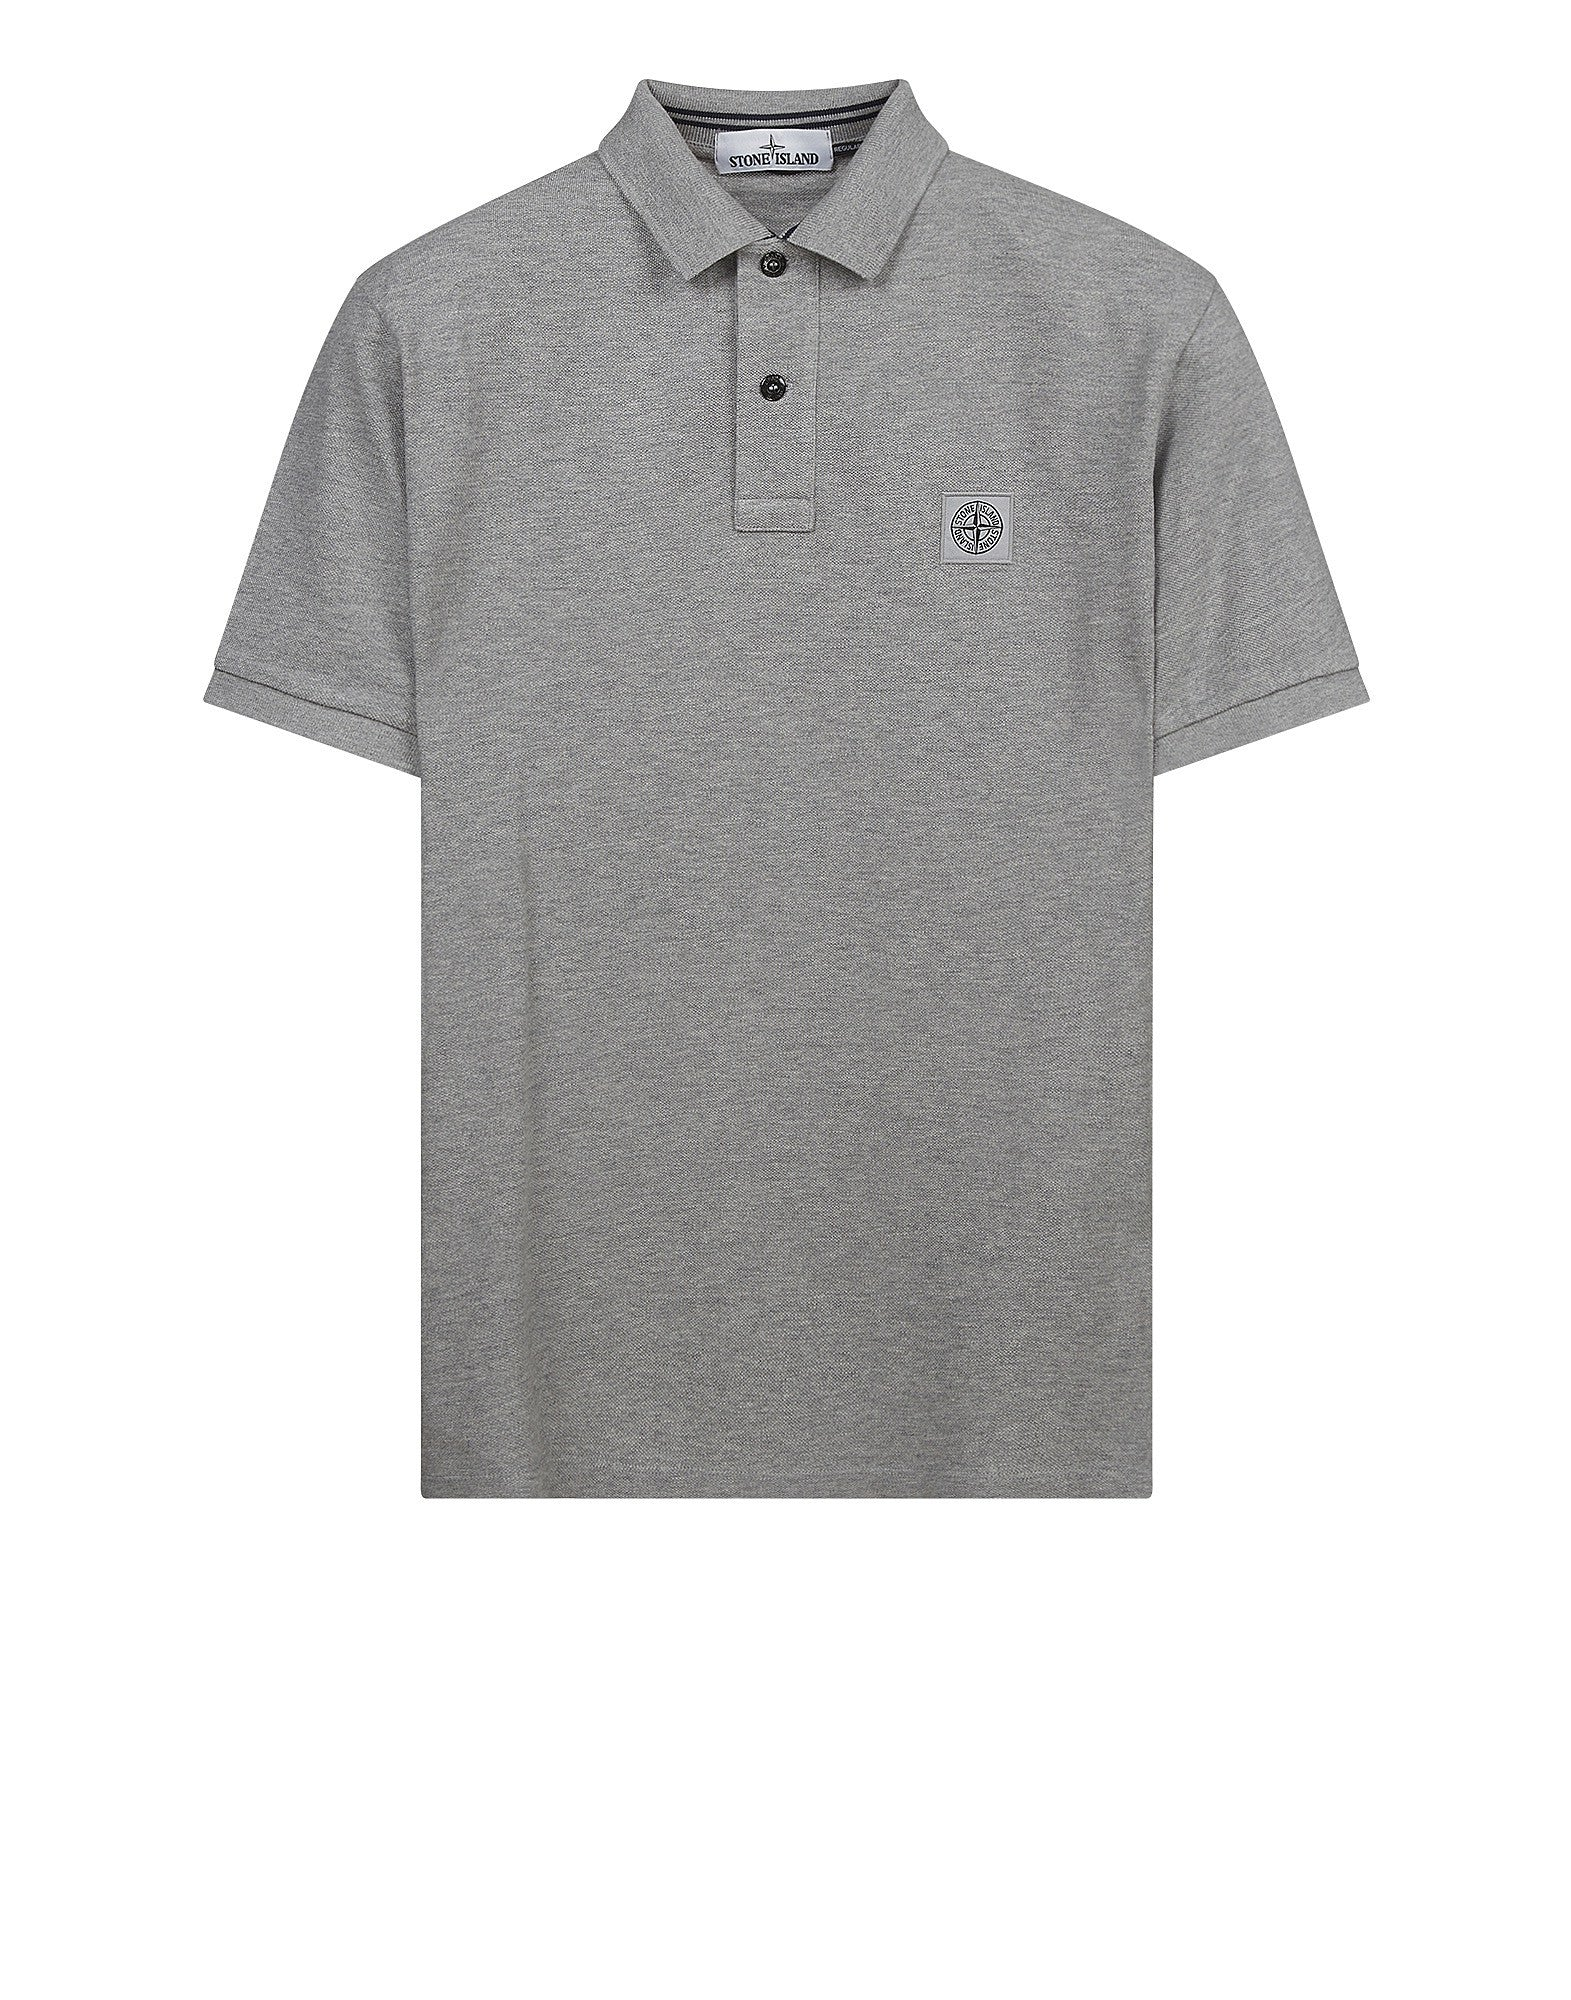 22C15 Cotton Pique Polo Shirt in Grey